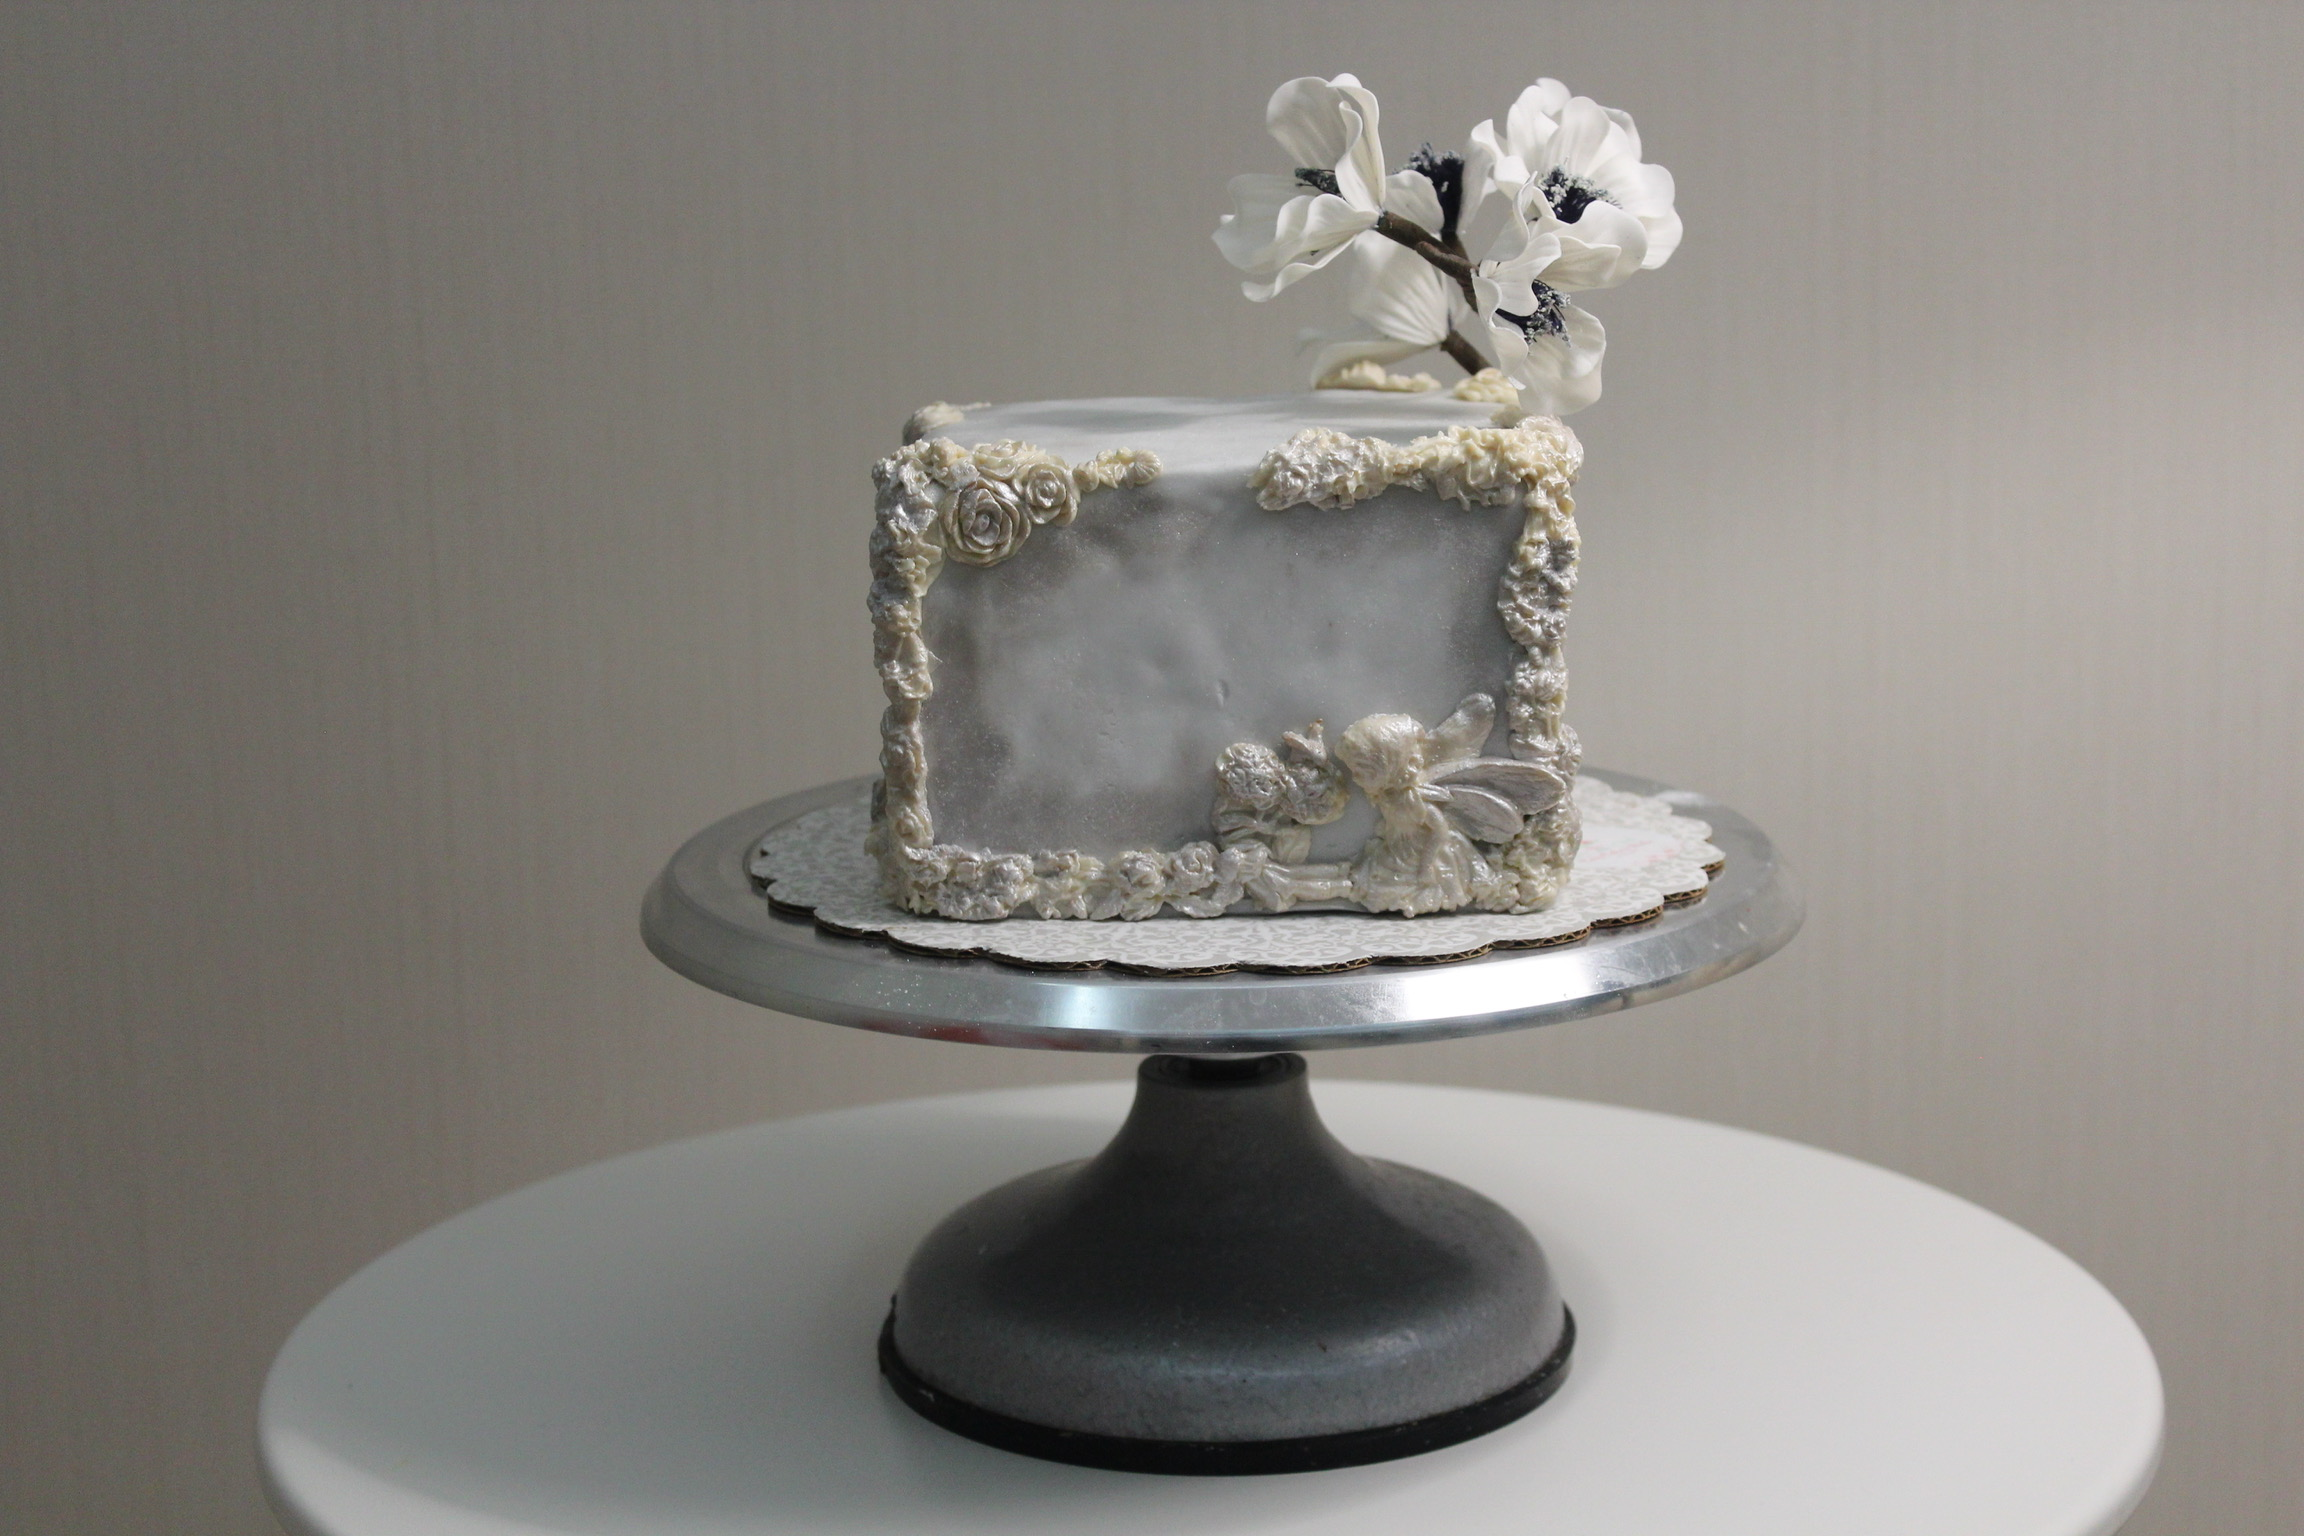 Gray square min cake with bas relief